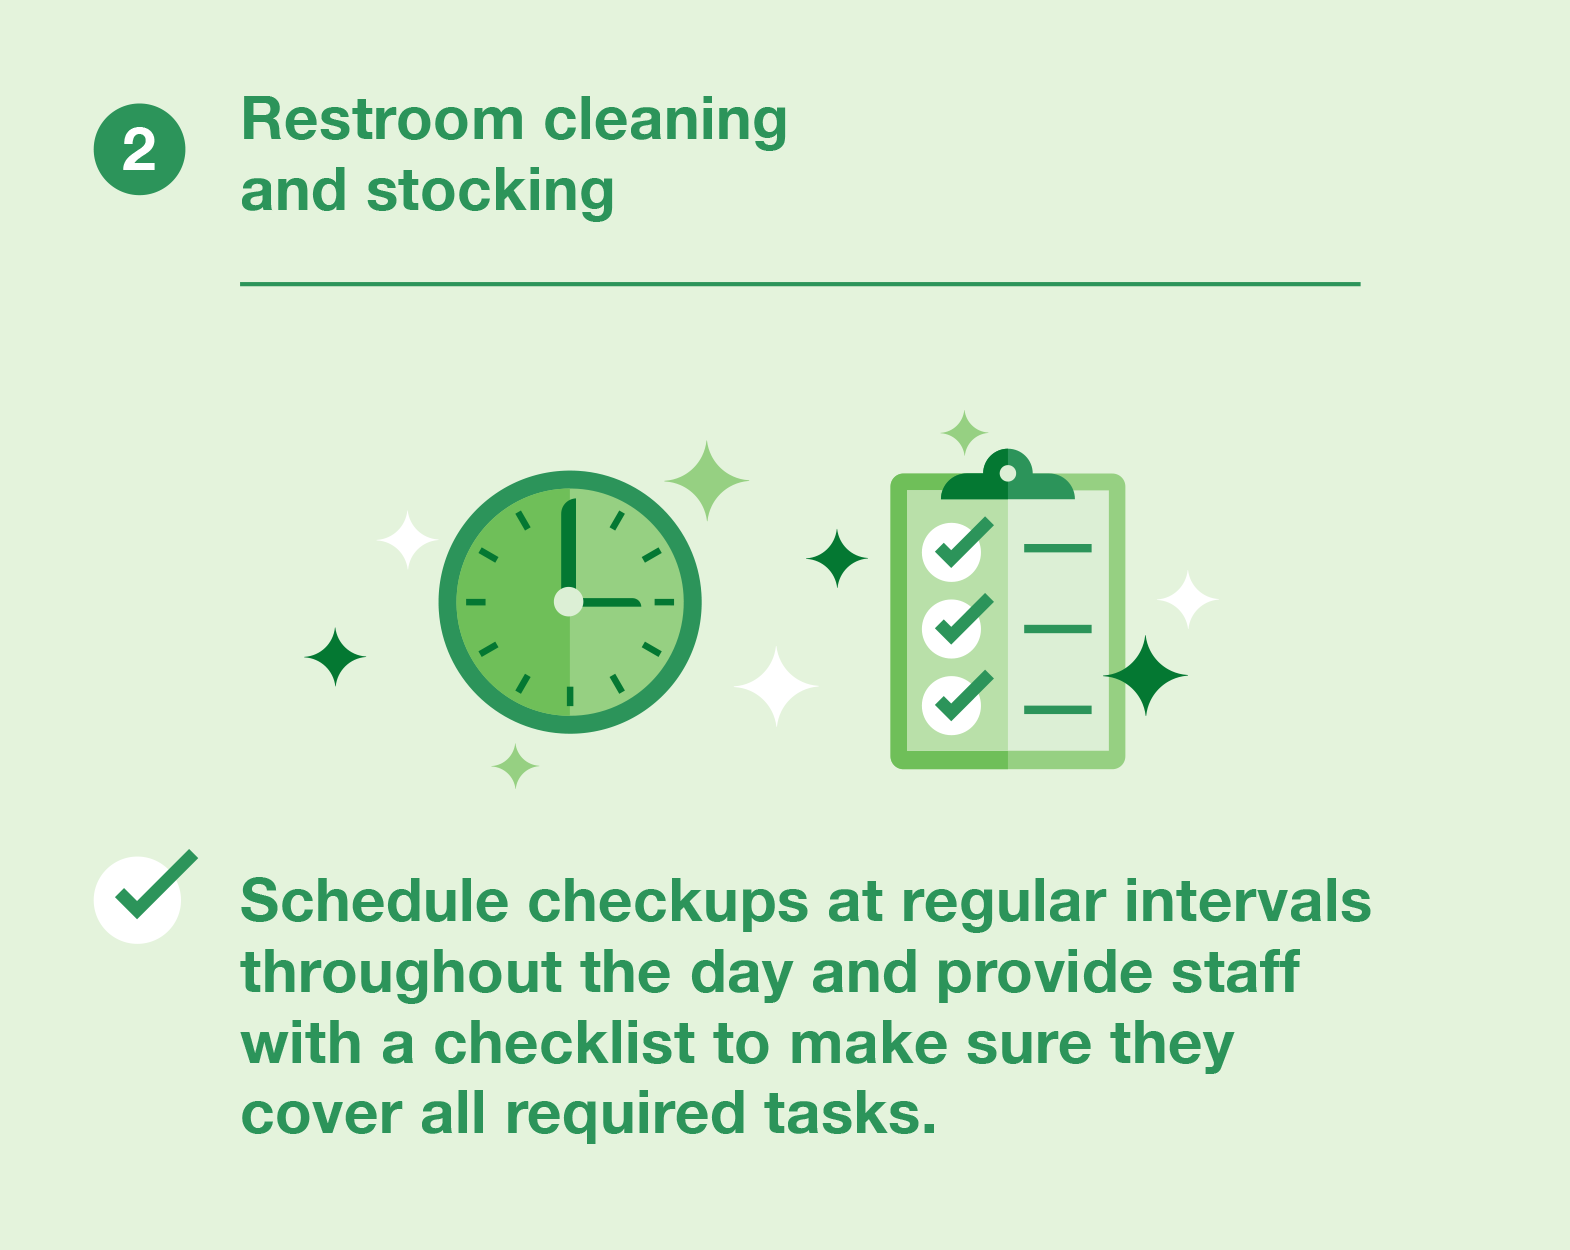 Restroom cleaning and stocking